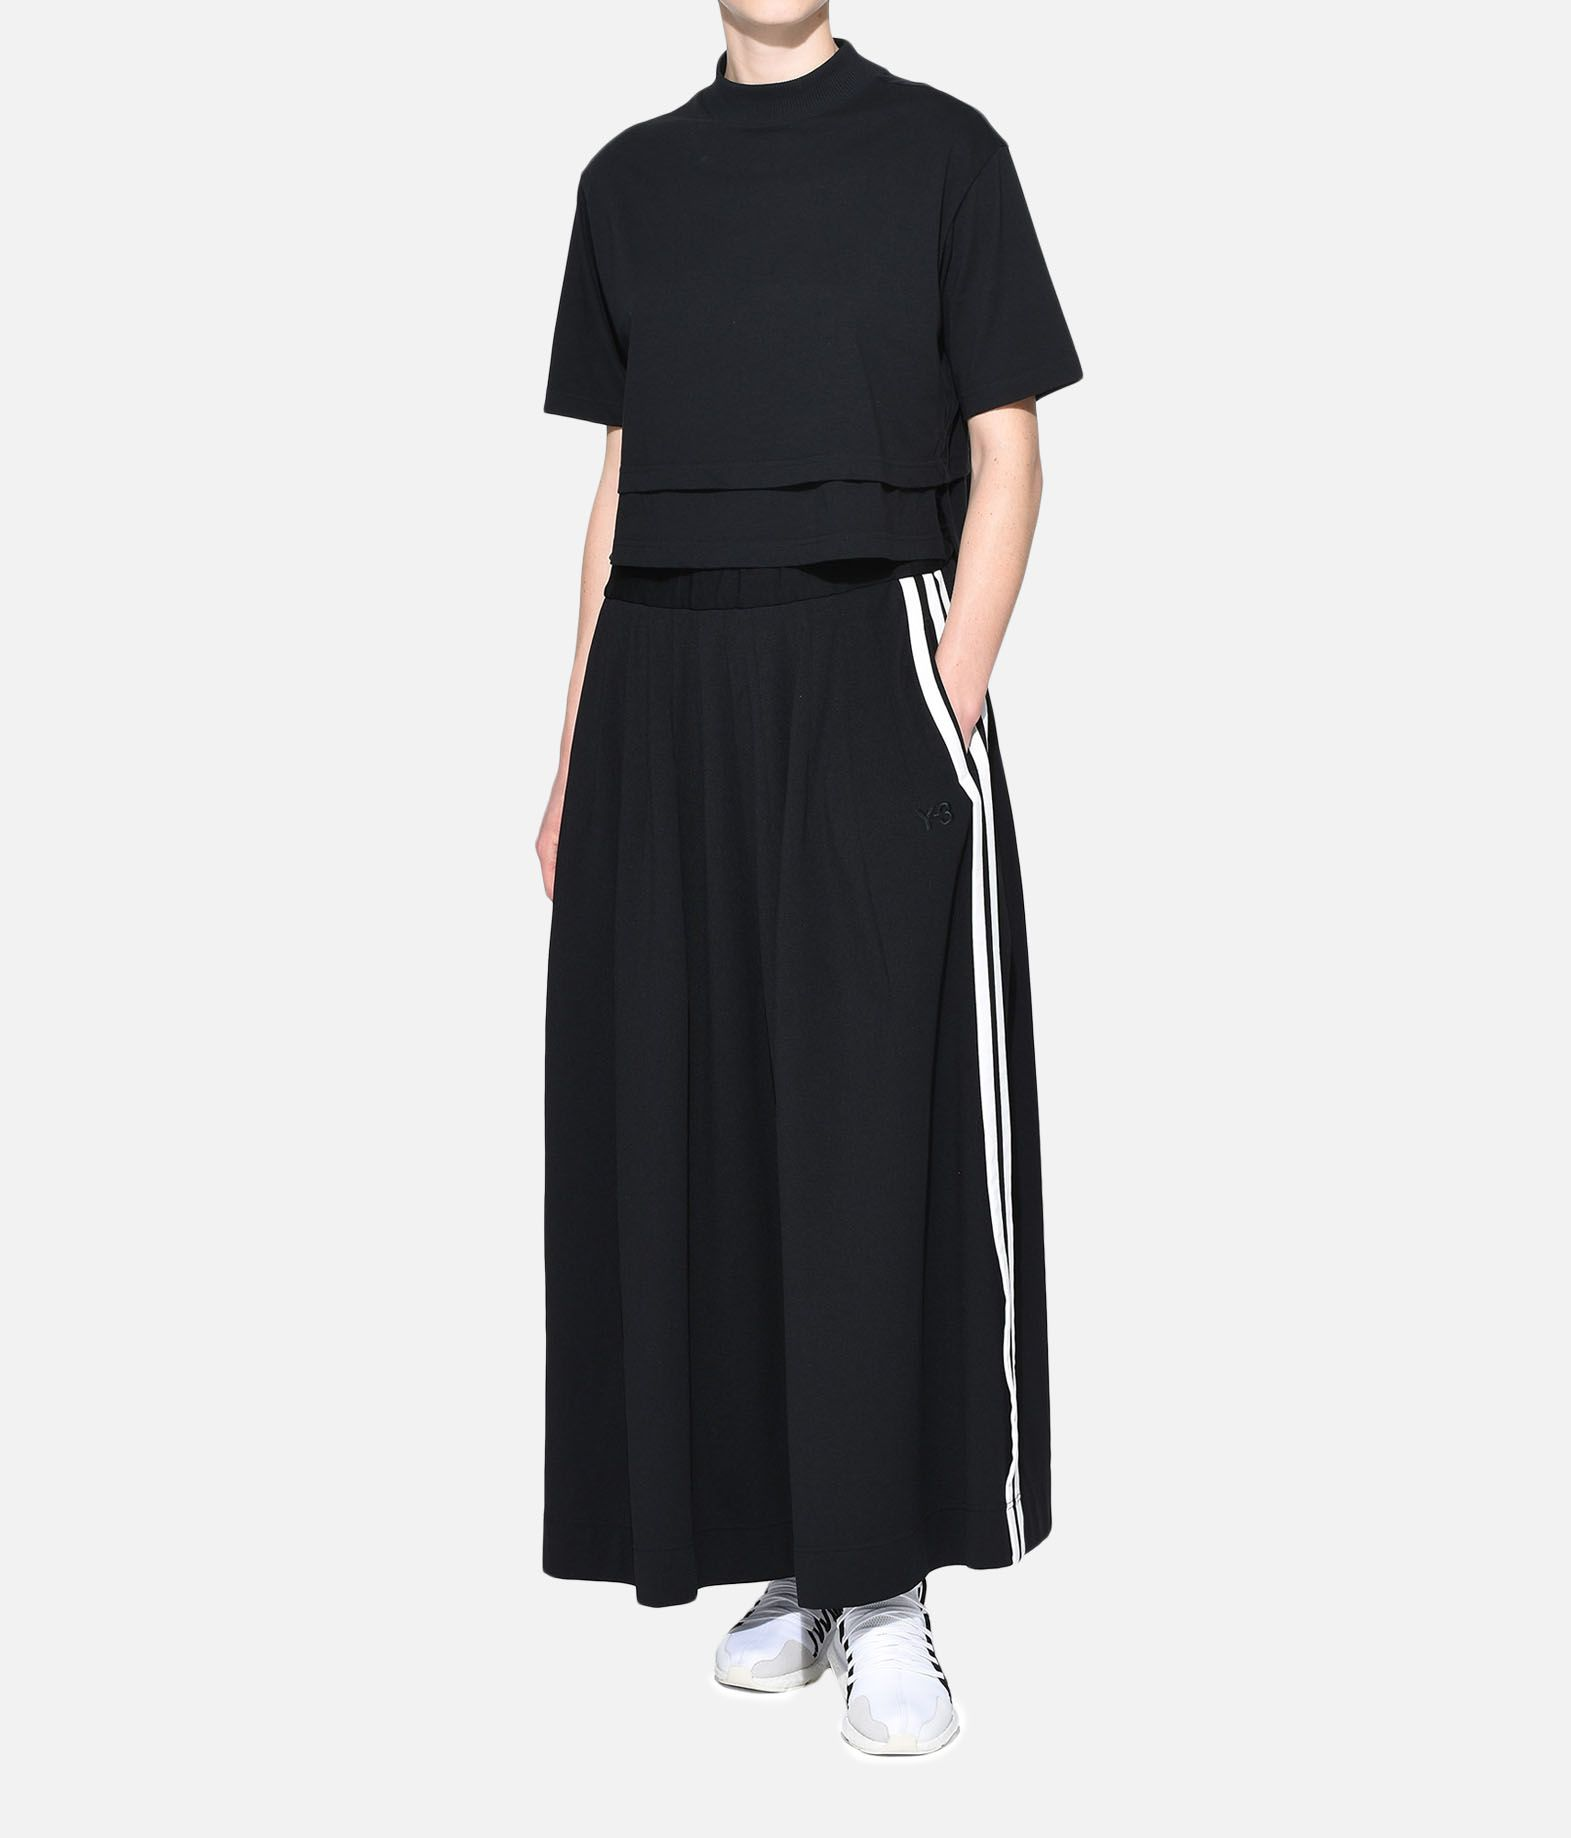 Y-3 Y-3 3-Stripes Selvedge Matte Track Skirt Knee length skirt Woman a